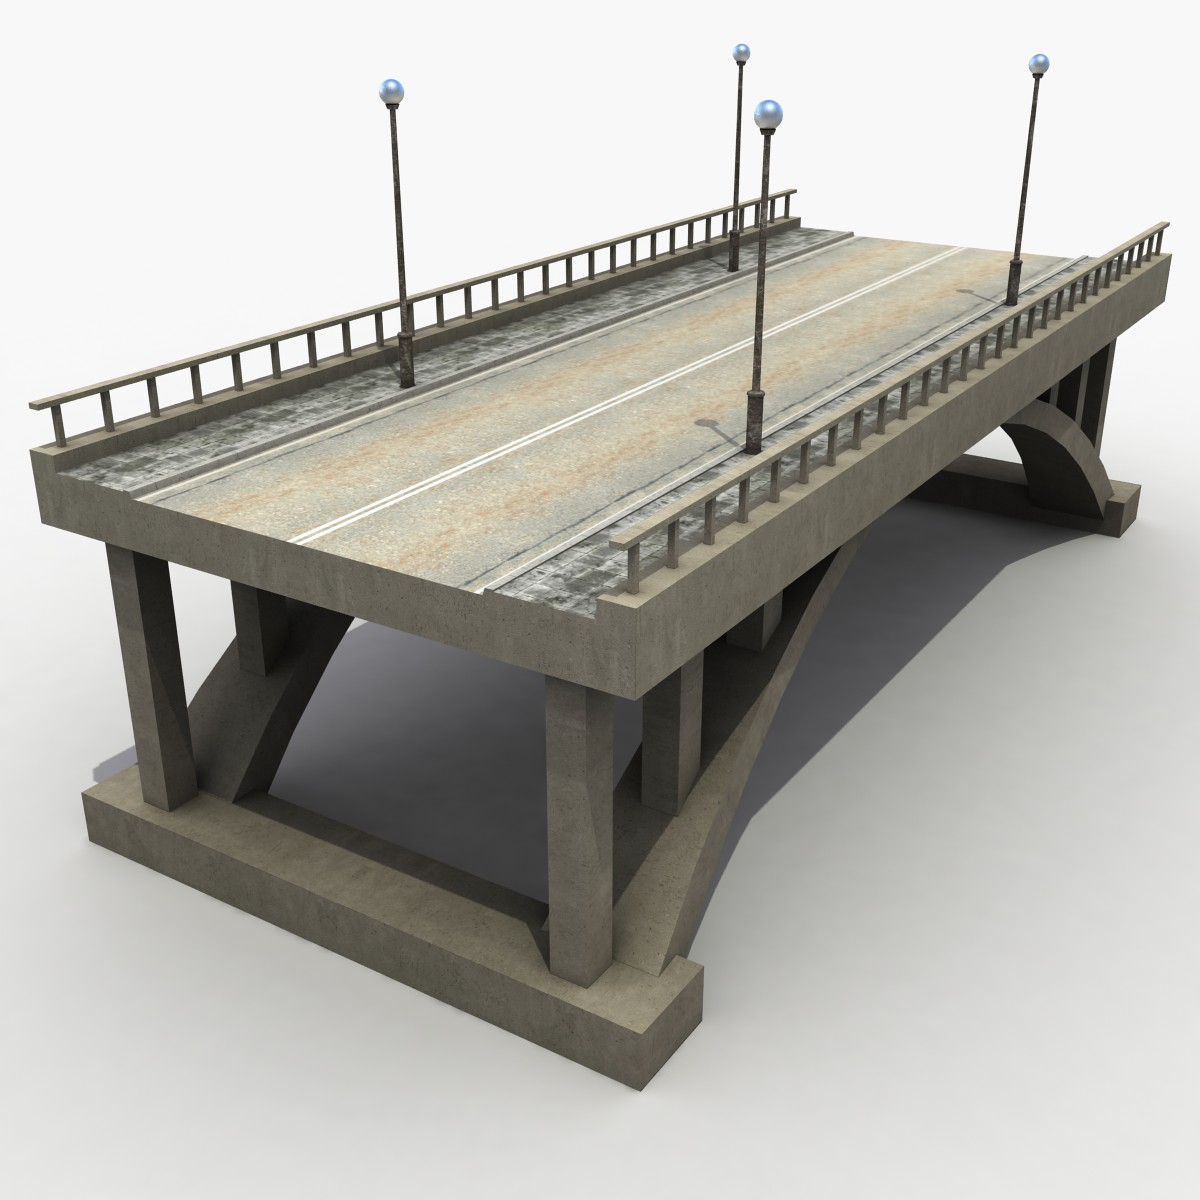 3d model Concrete Bridge